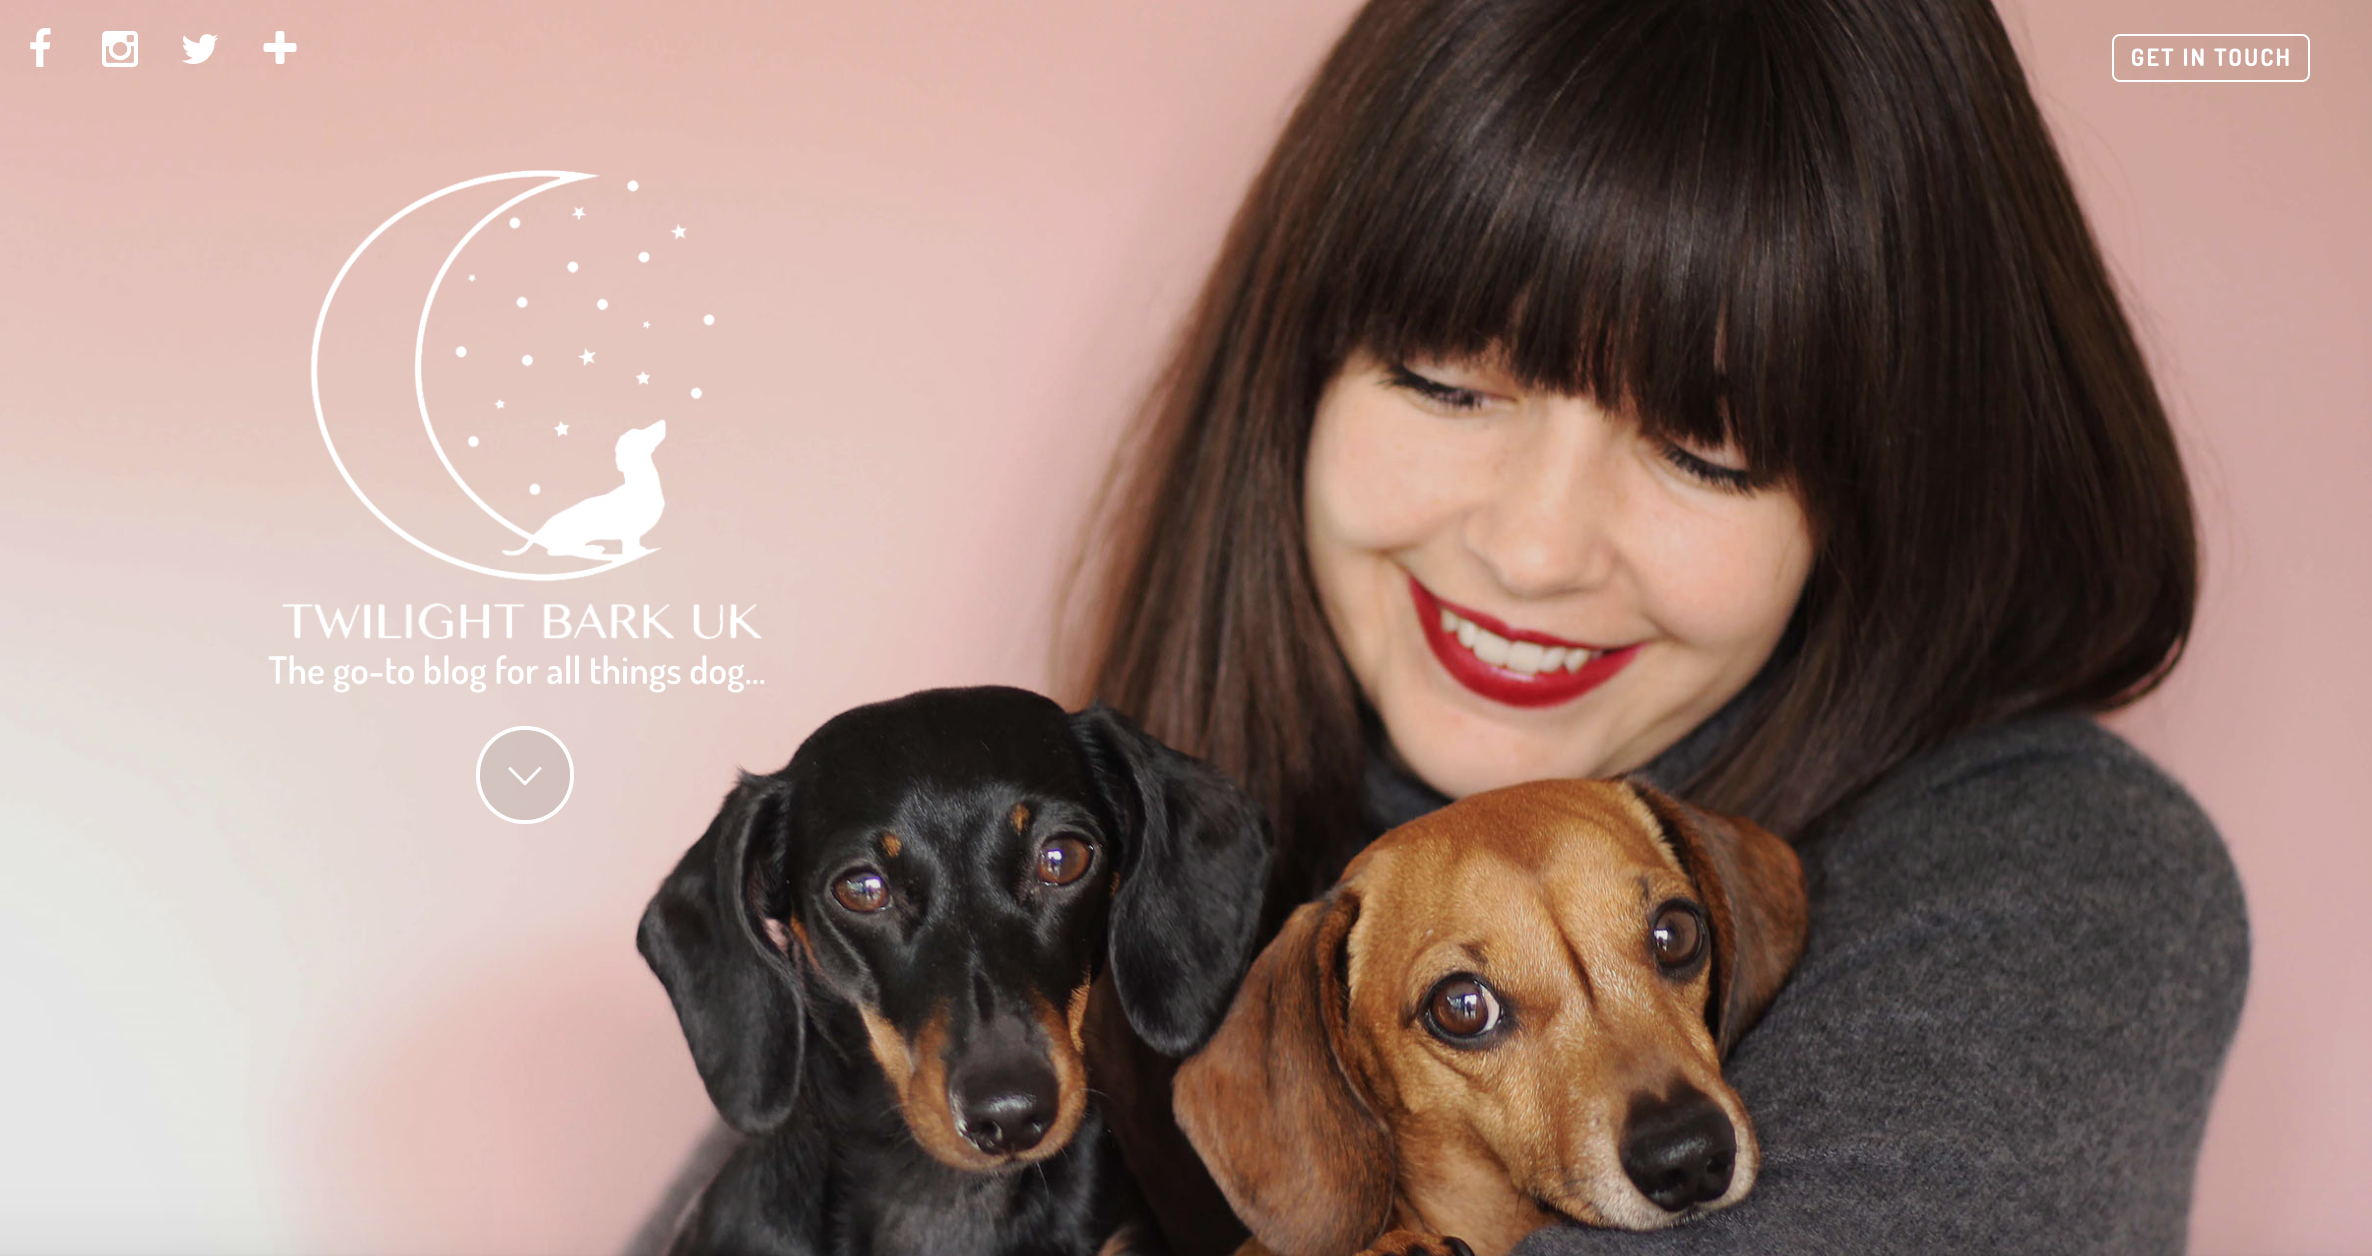 All Things Canine – Dog Website Of The Week – Twilight Bark UK